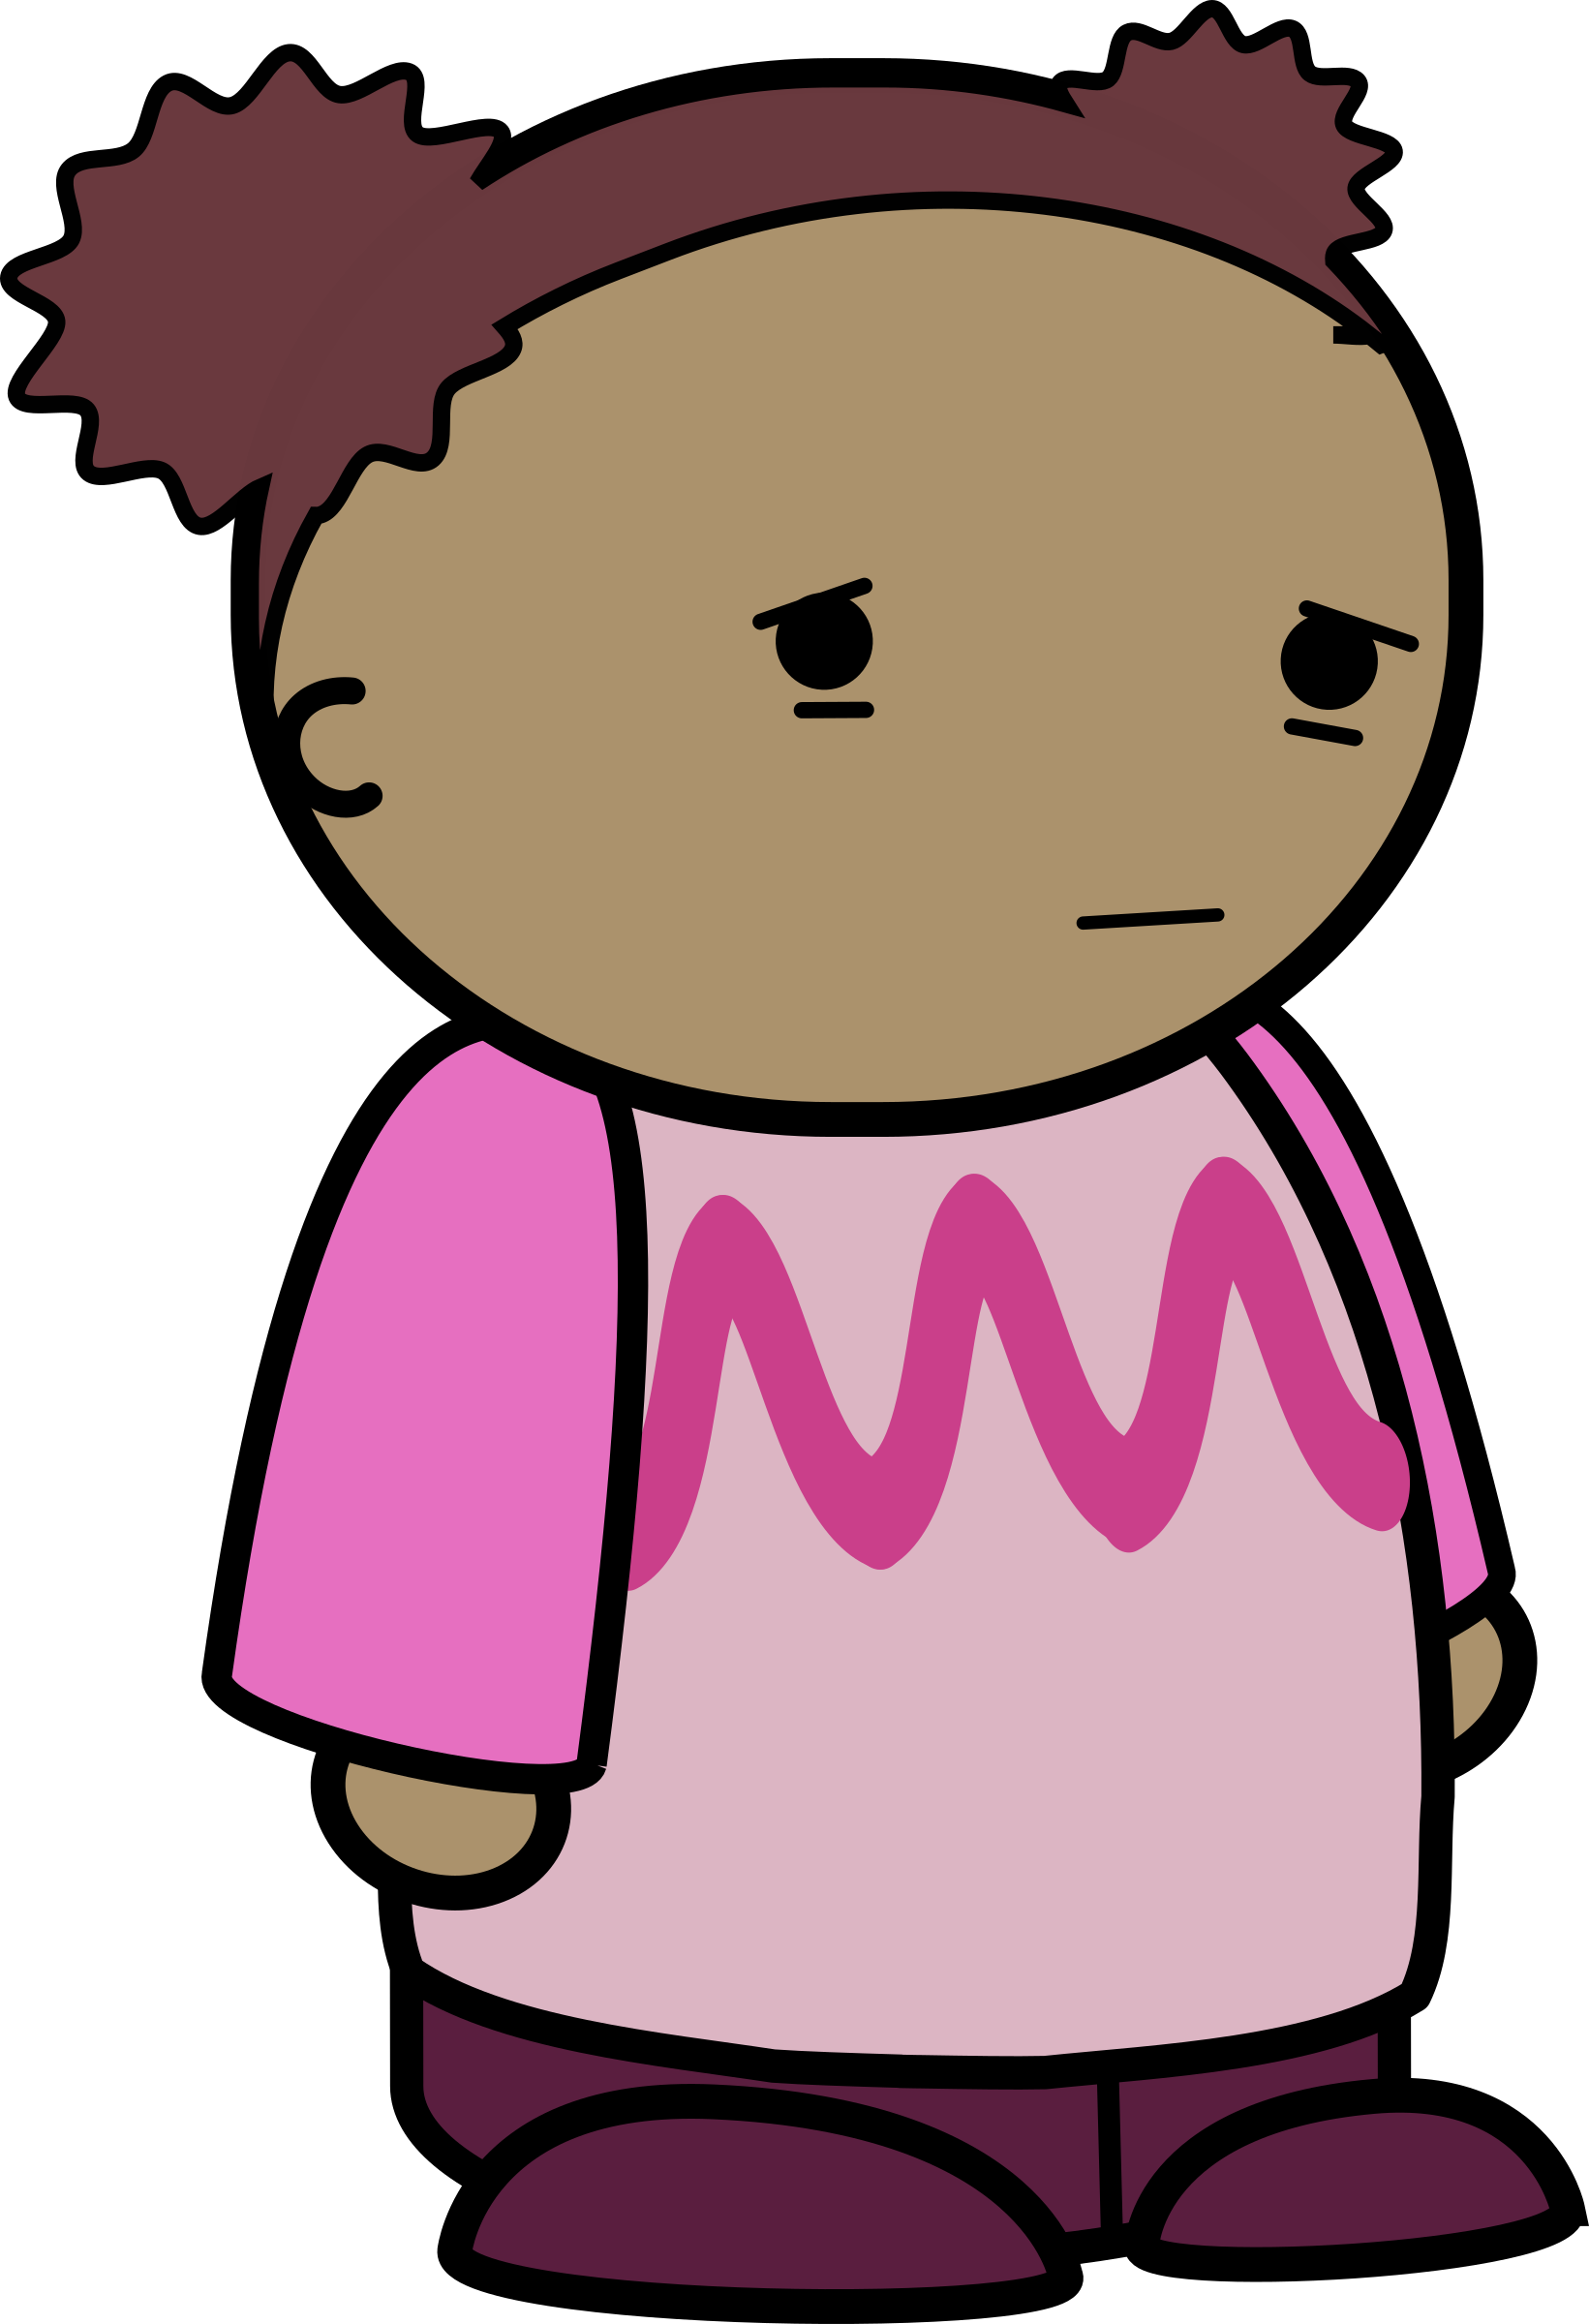 Clipart - mix and match character lily sad side transparent library